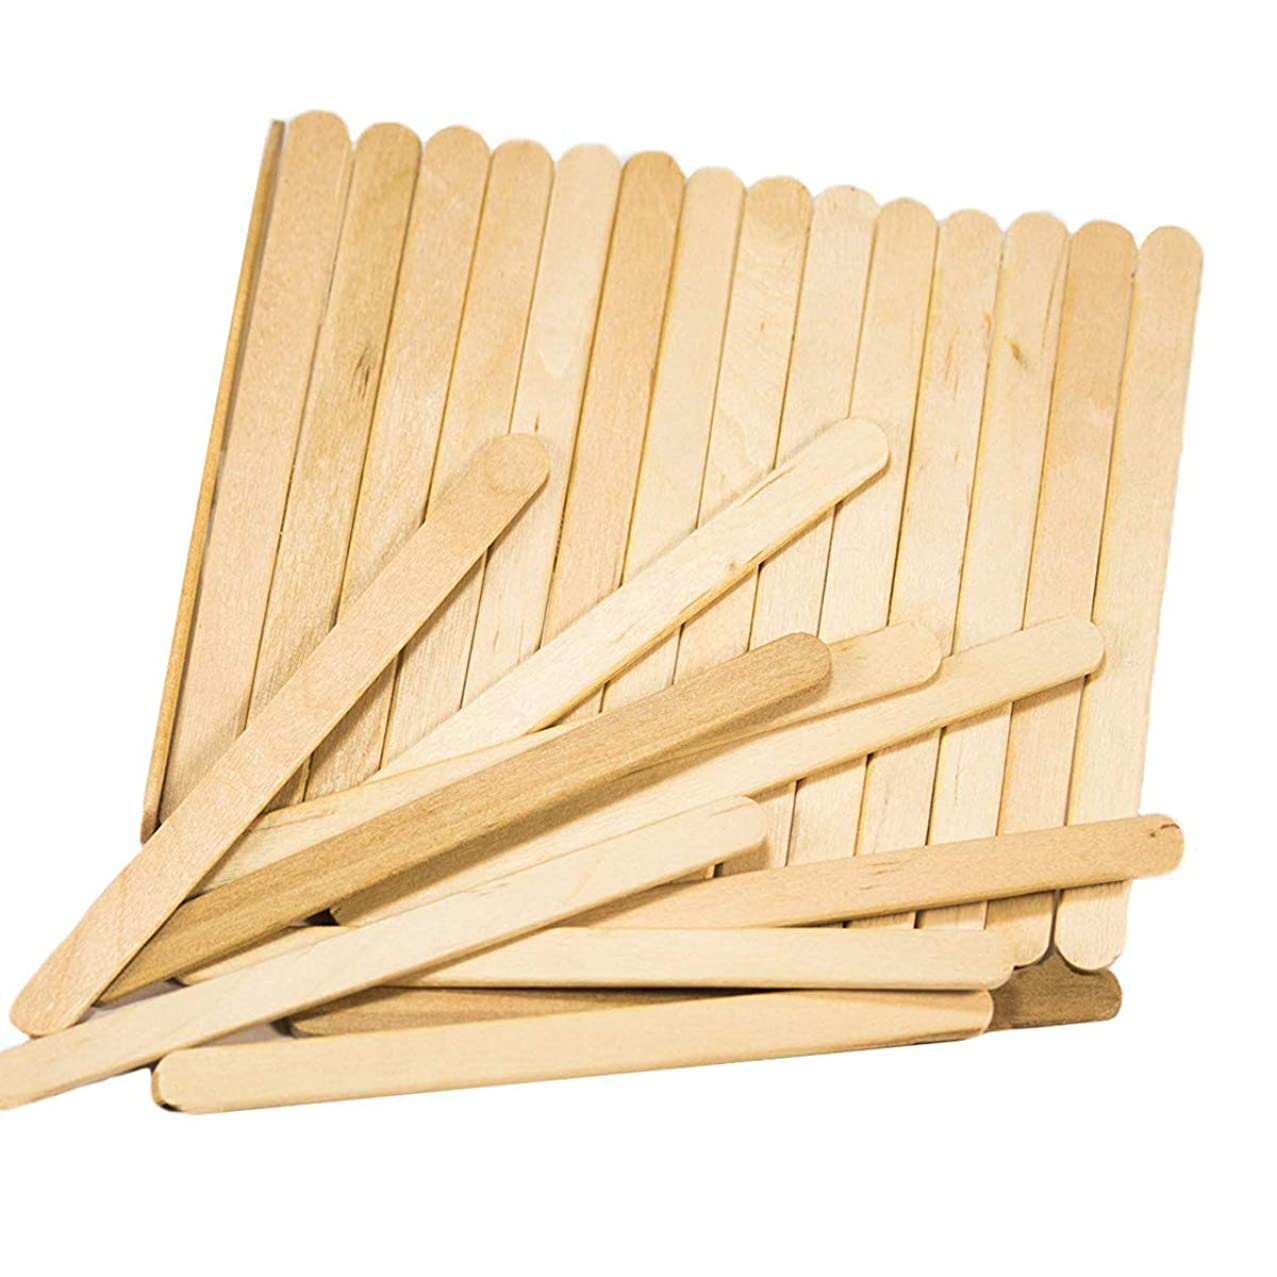 ZLYY 100 Pcs Craft Sticks Ice Cream Sticks Wooden Popsicle Sticks 4.5